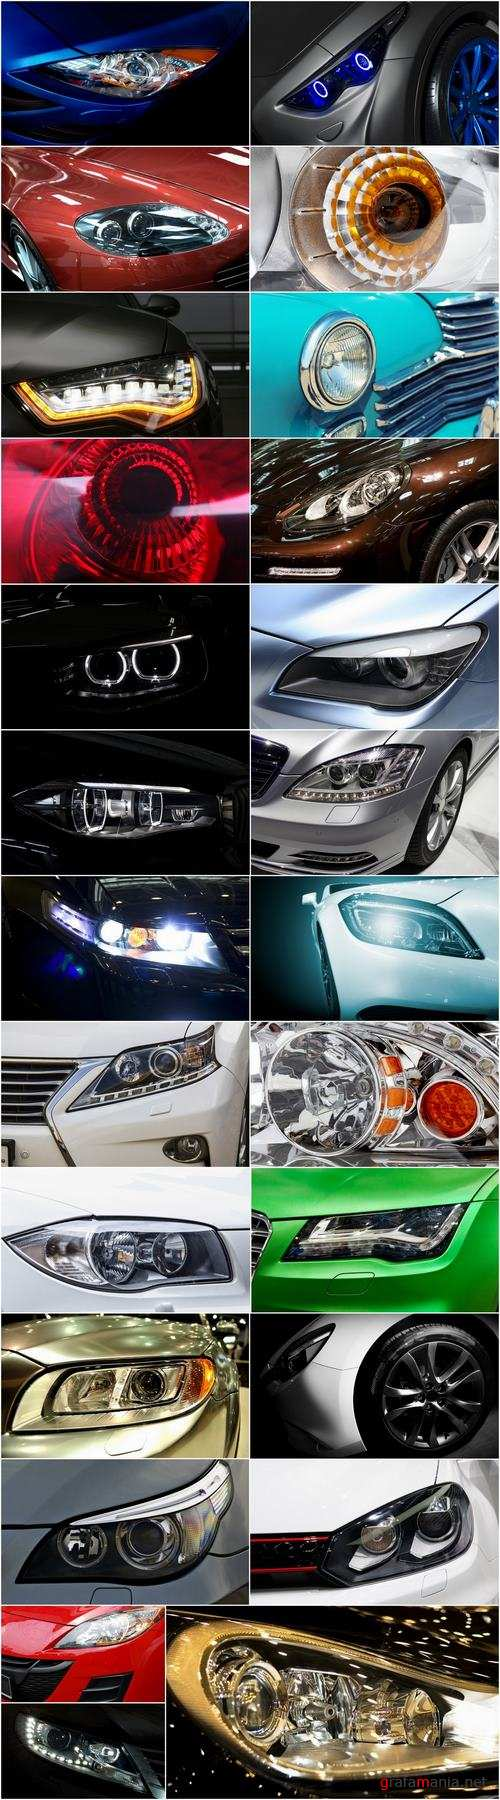 Car headlight lamp light glass lens 25 HQ Jpeg